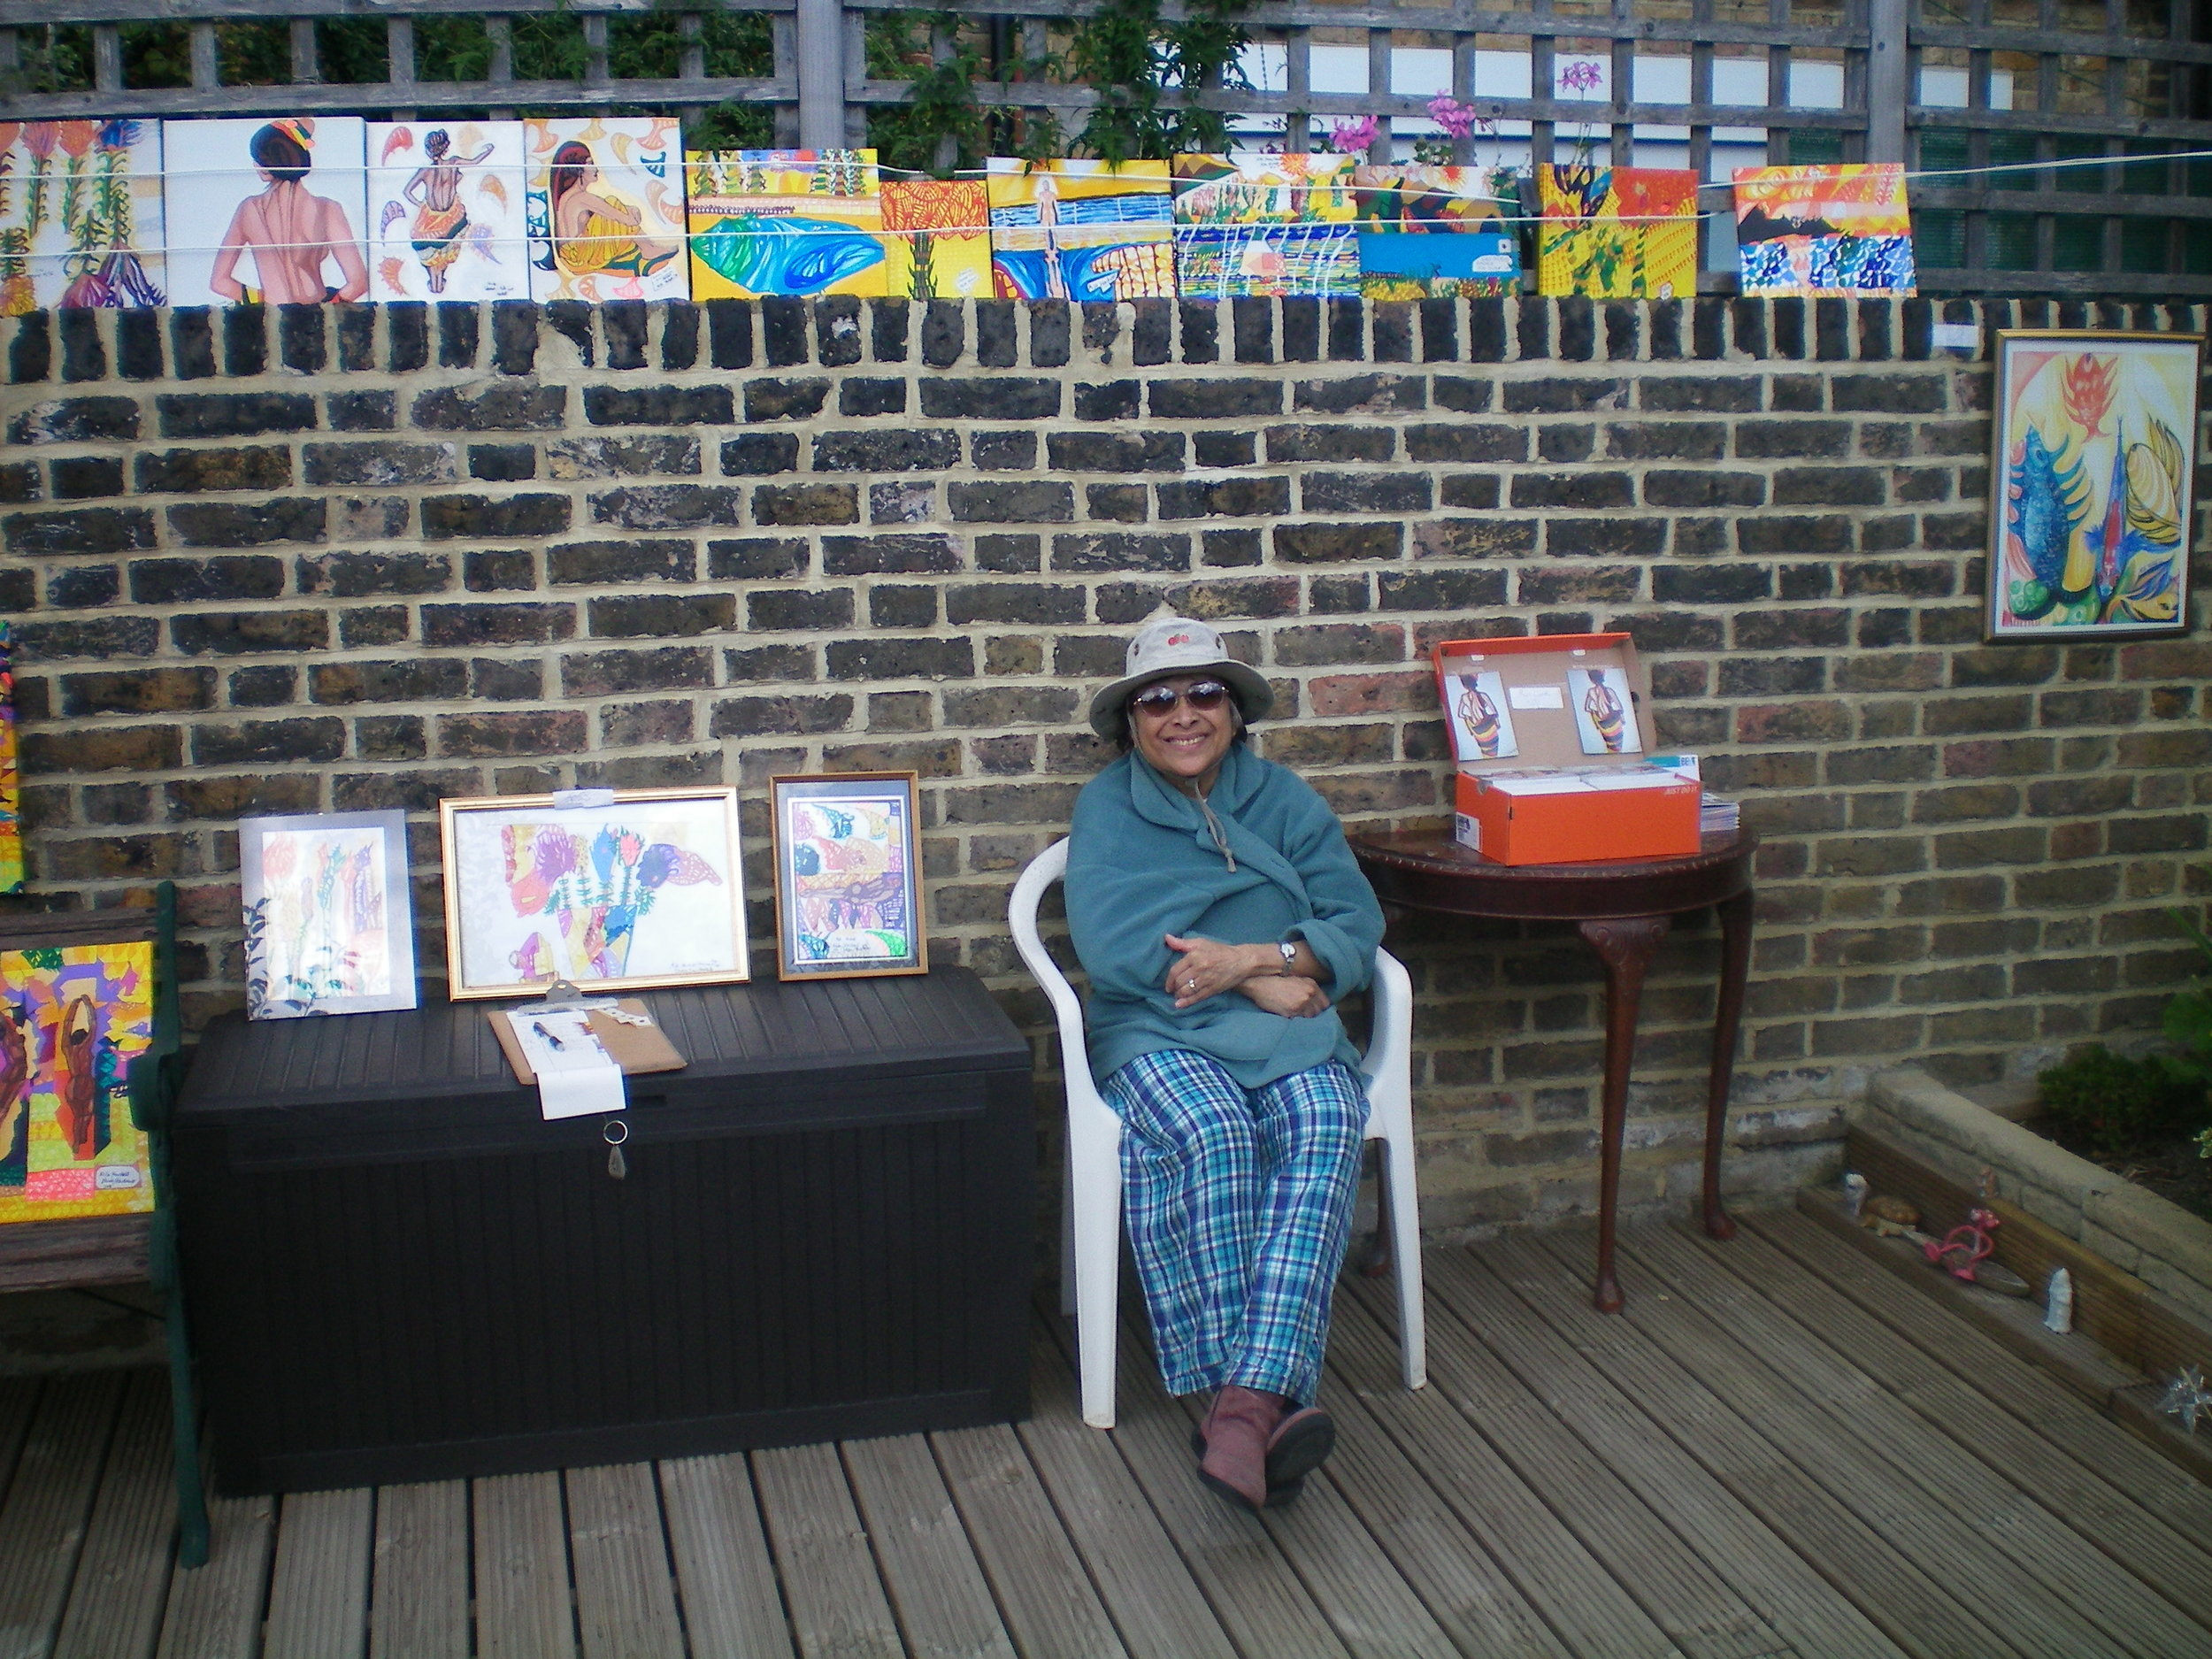 The Artist with her work